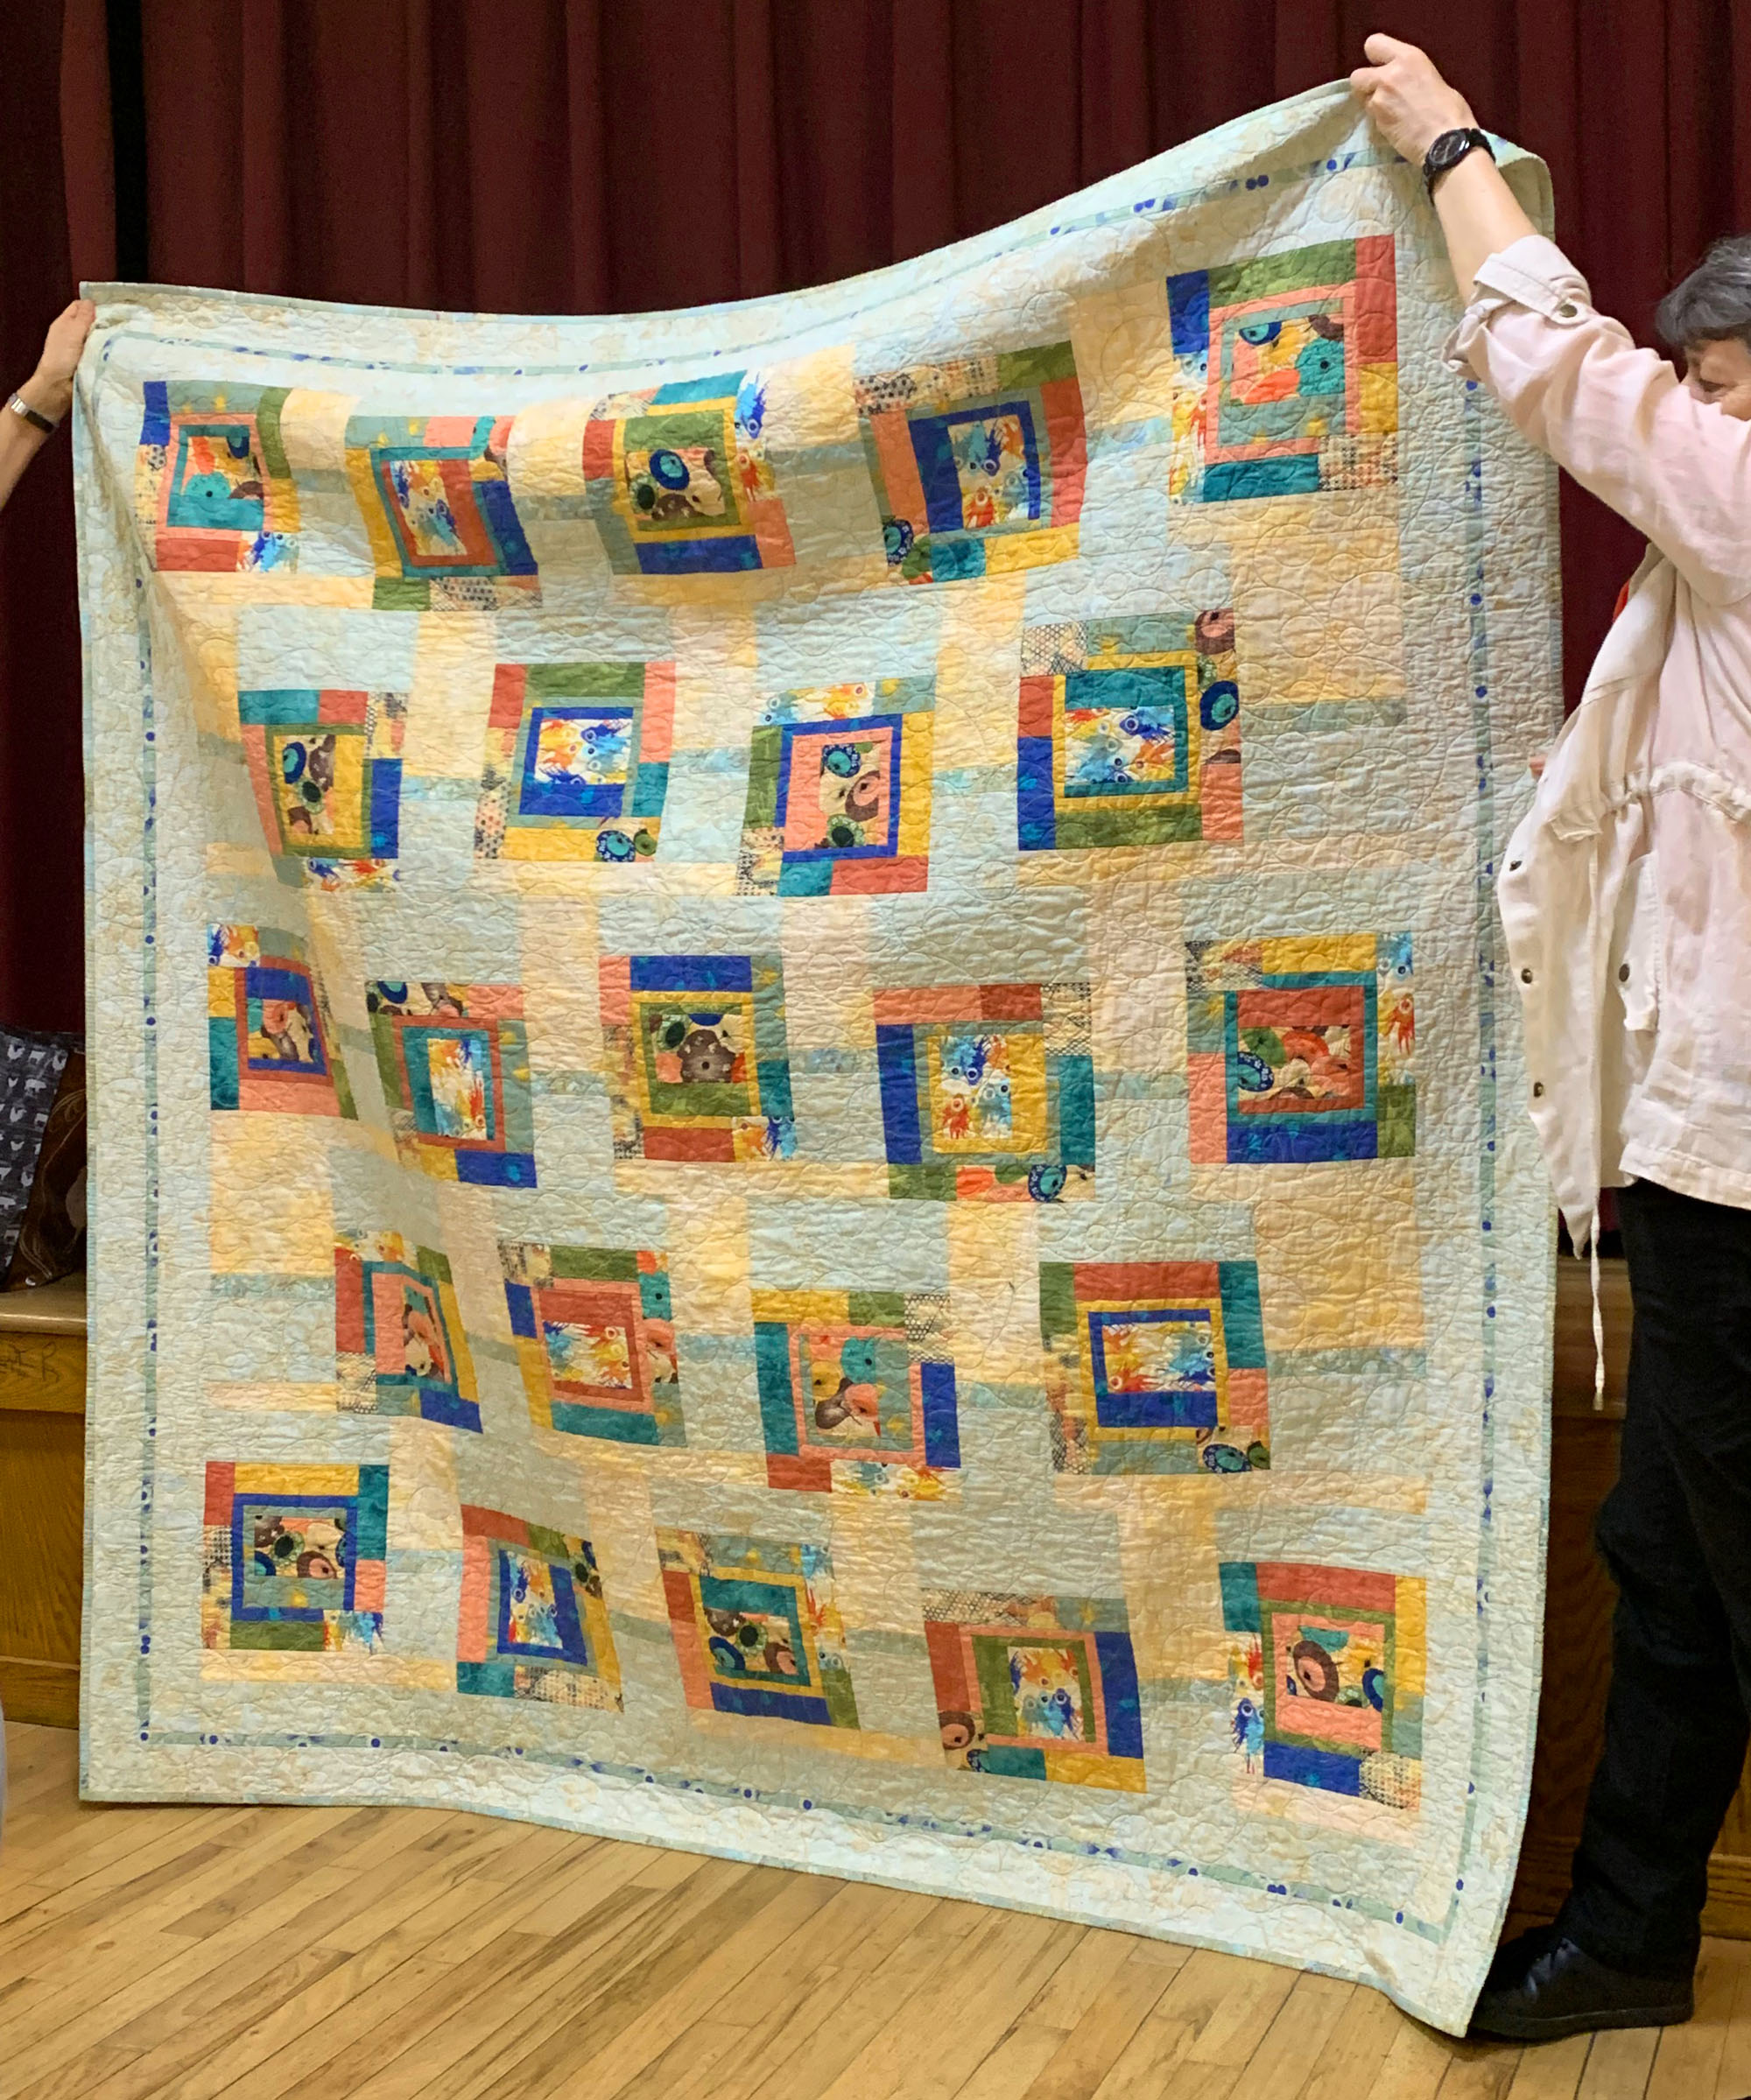 Completed Comfort Quilt, made by Gail Otis